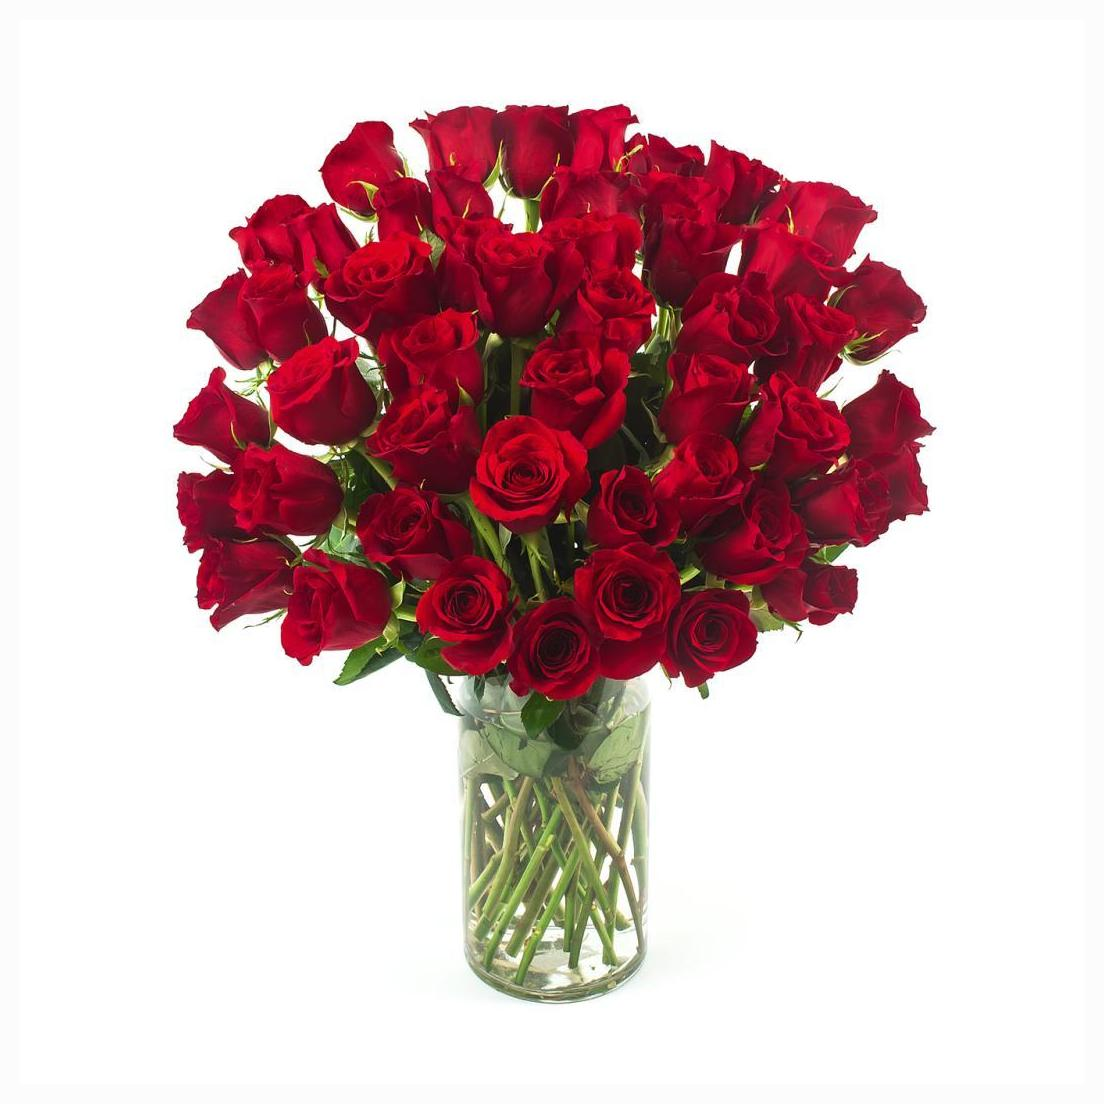 50 red roses in a glass vase for other cities delivery outside 50 red roses in a glass vase for other cities delivery outside baroda reviewsmspy